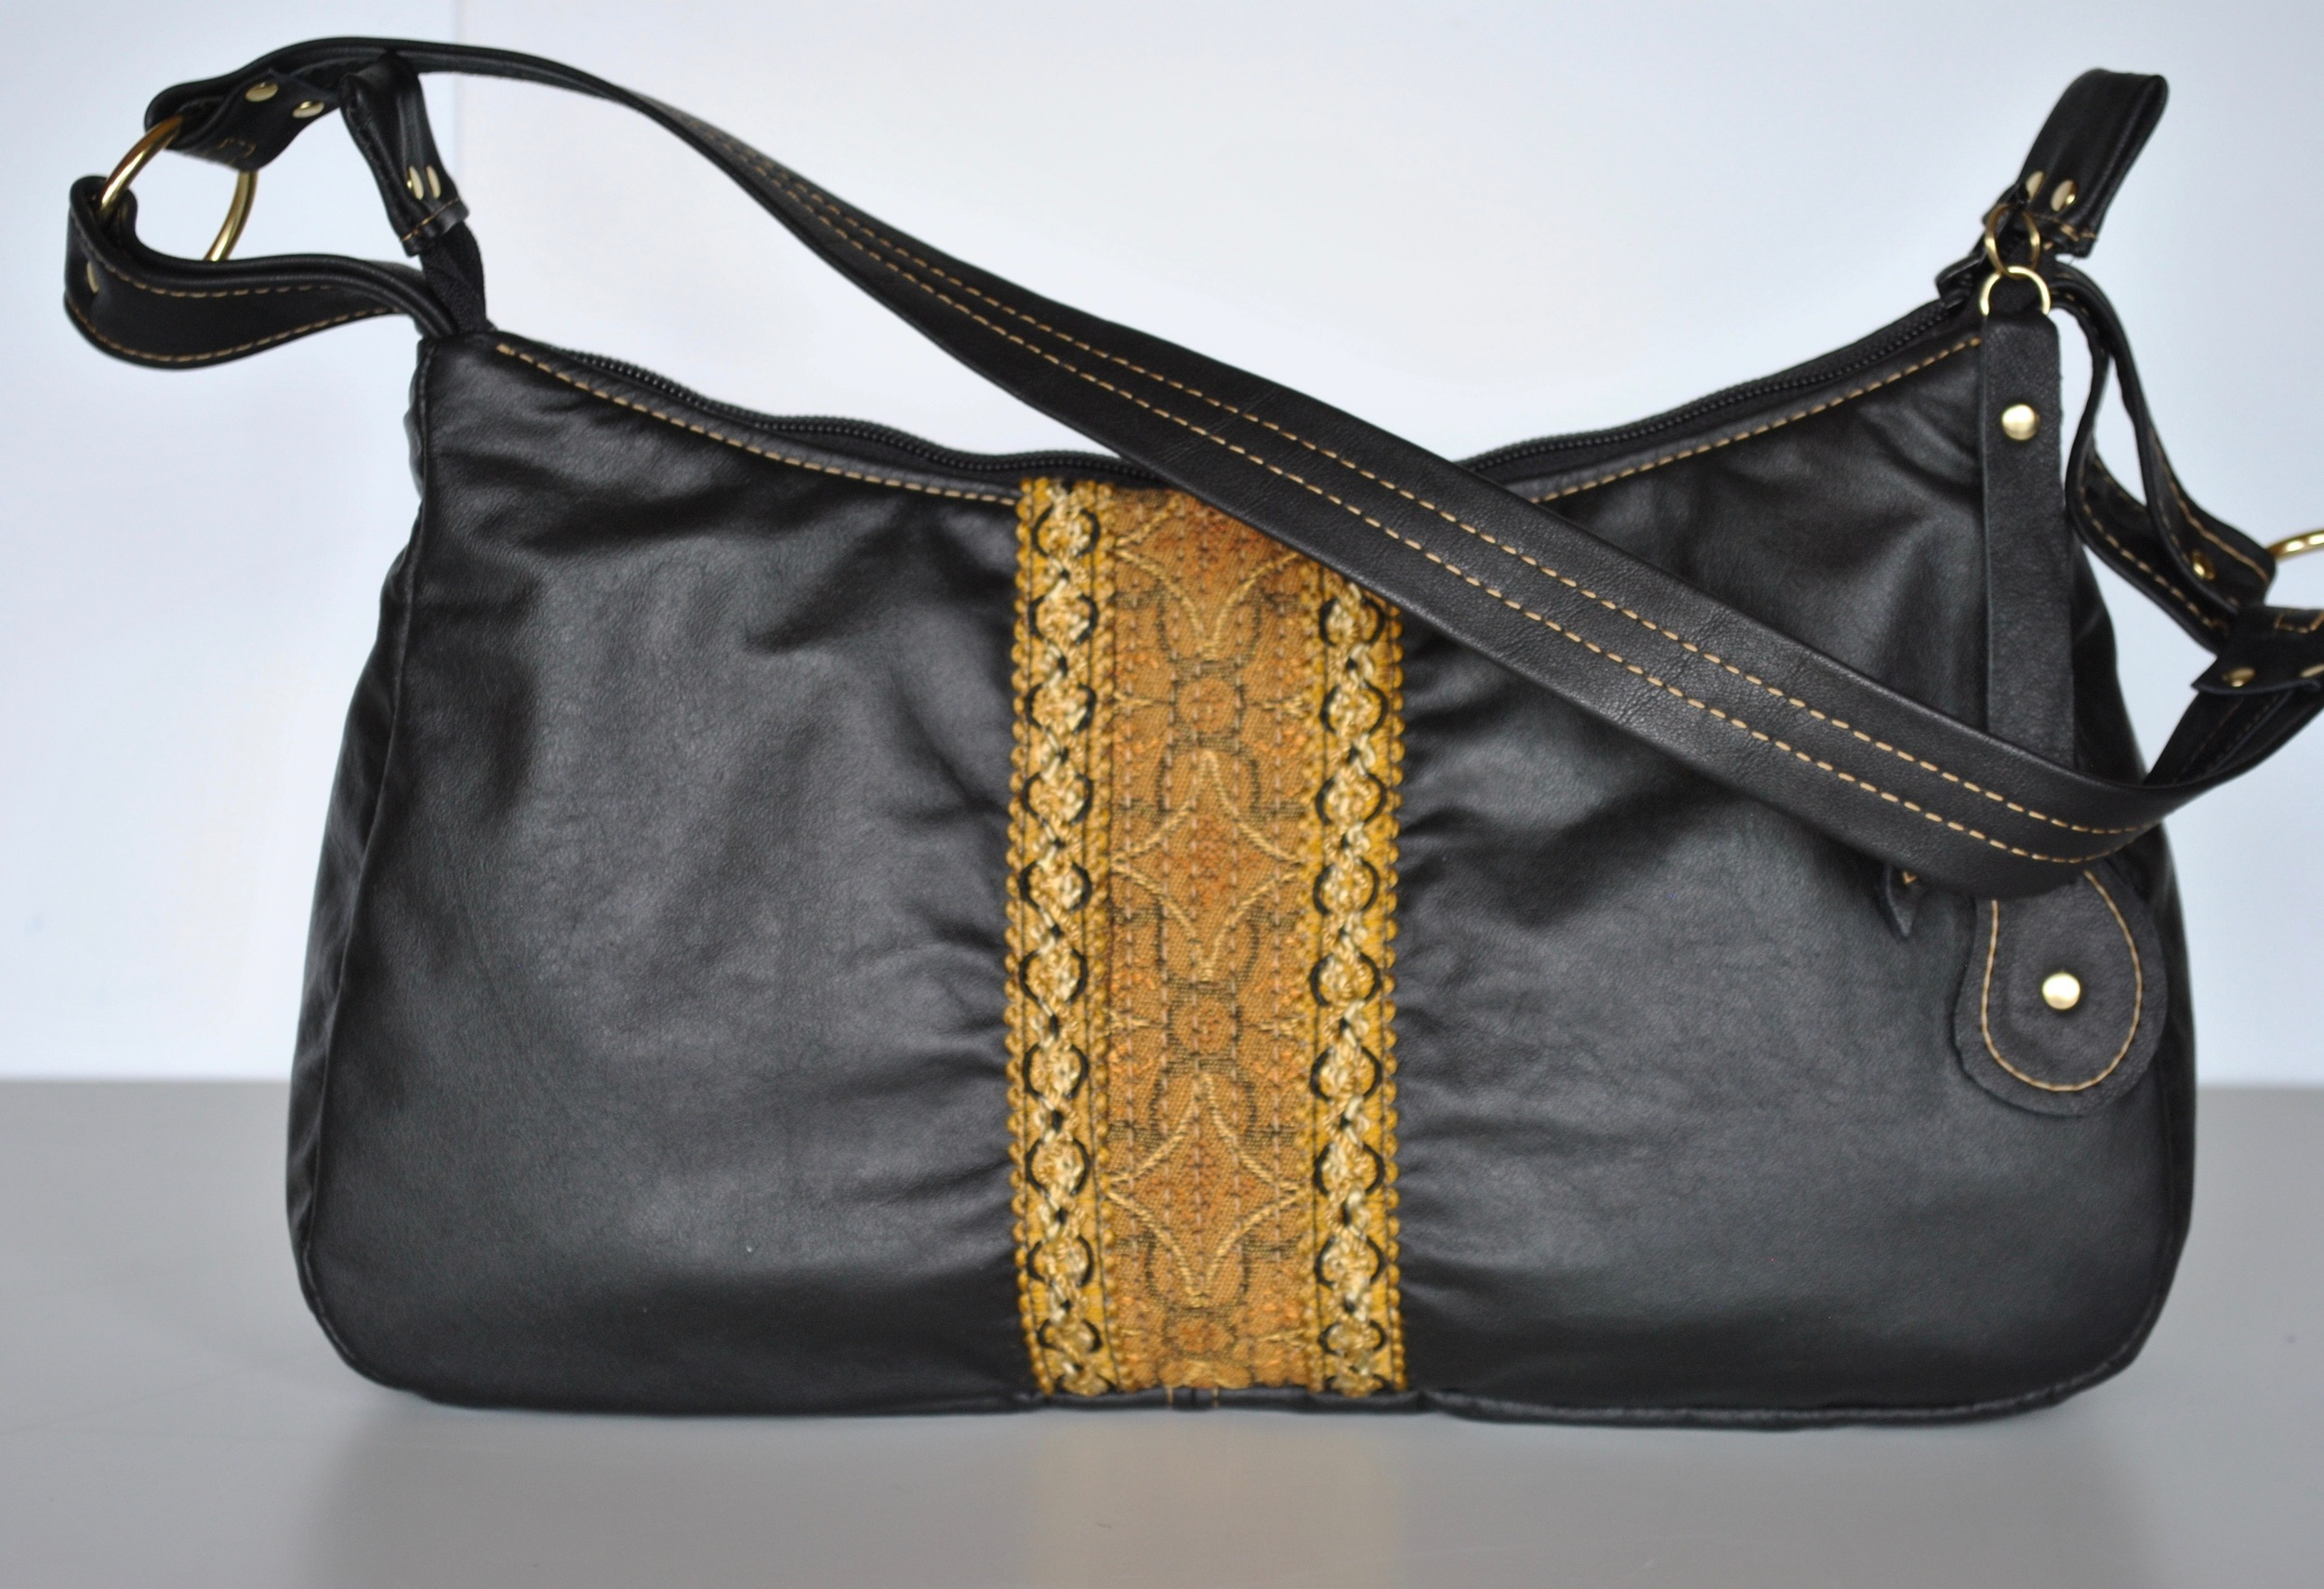 Black Leather Handbag with Gold Embelliahment